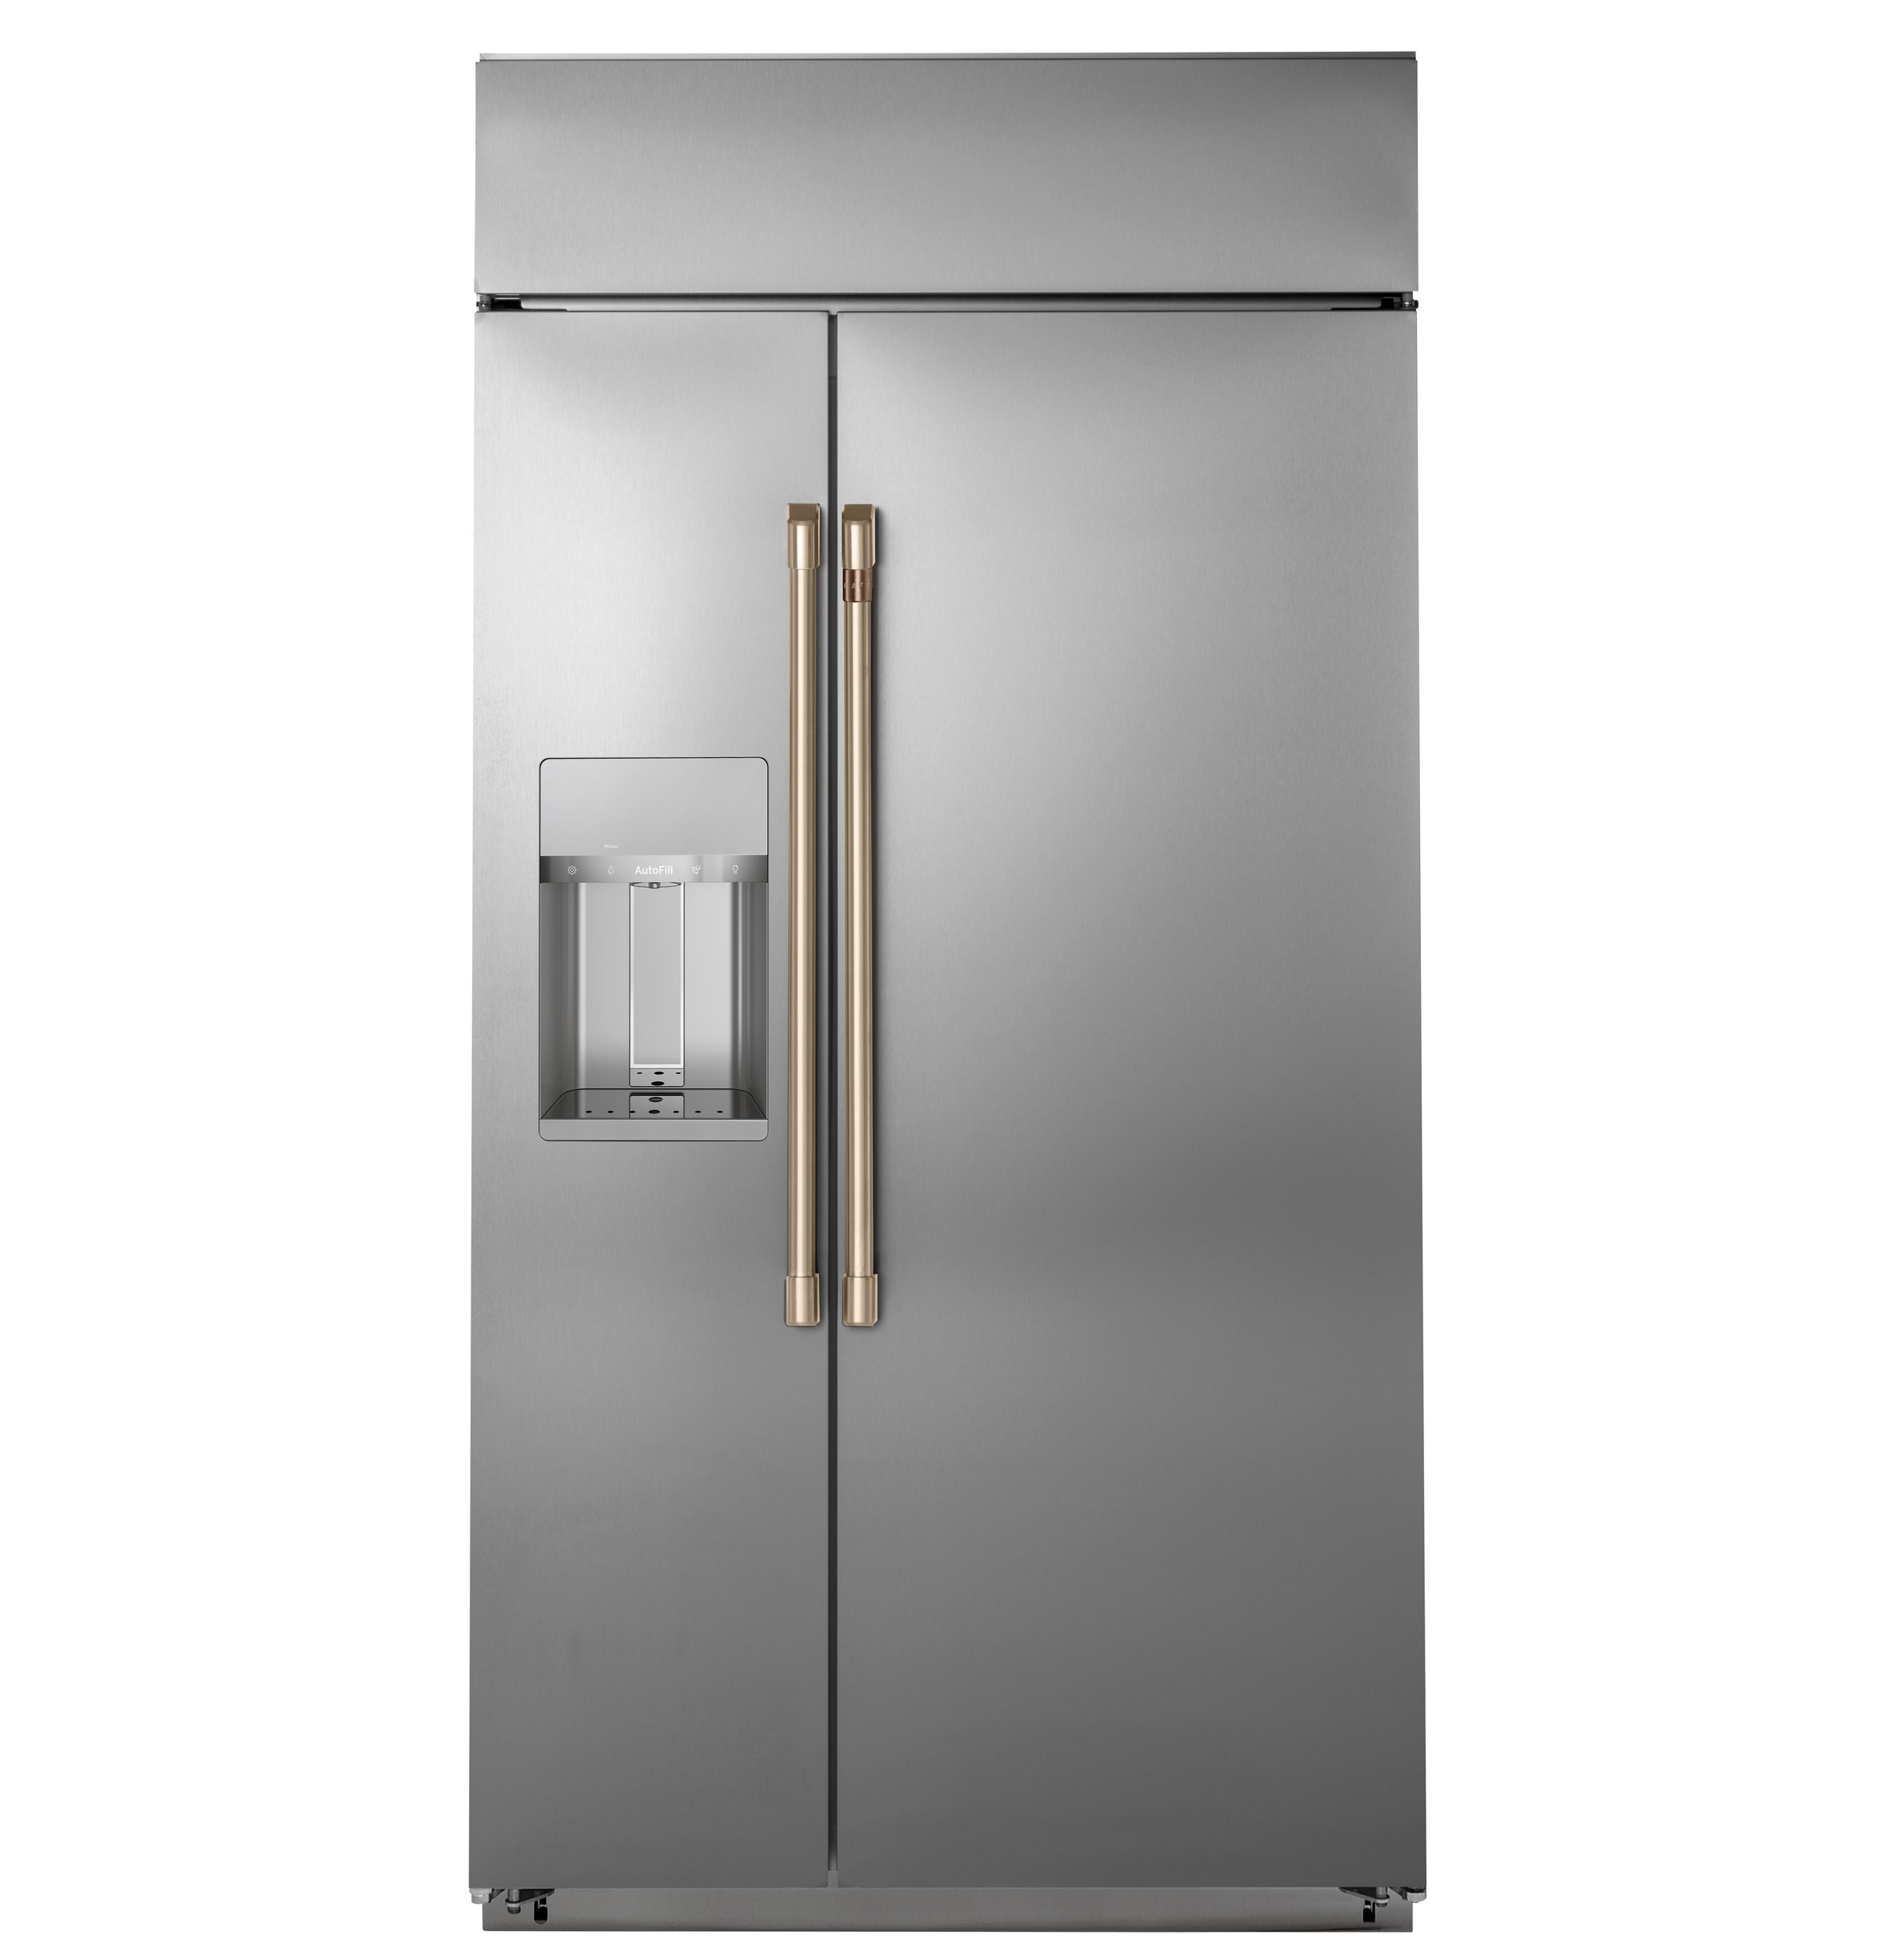 "Model: CSB42YP2NS1 | Cafe Café™ 42"" Smart Built-In Side-by-Side Refrigerator with Dispenser"